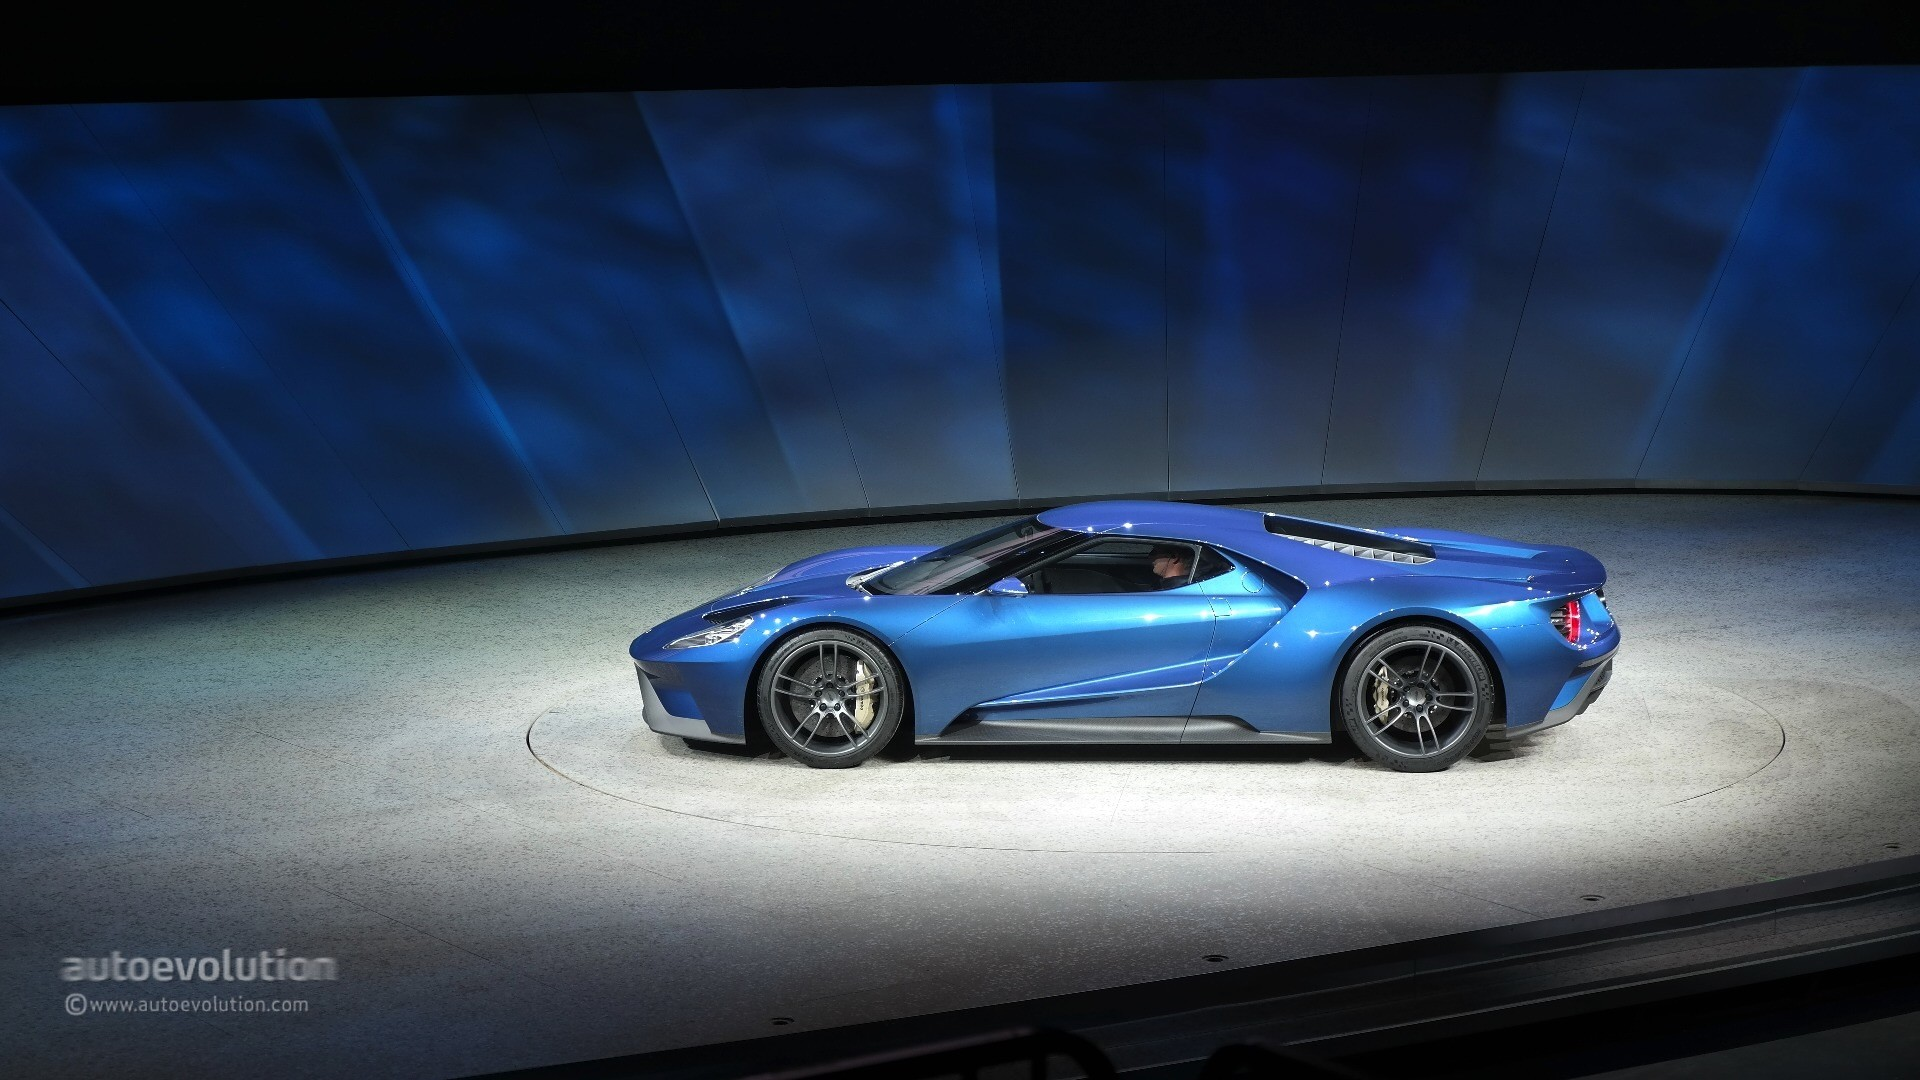 2017 Ford GT Supercar Teased in Forza Motorsport 6 Trailer - autoevolution